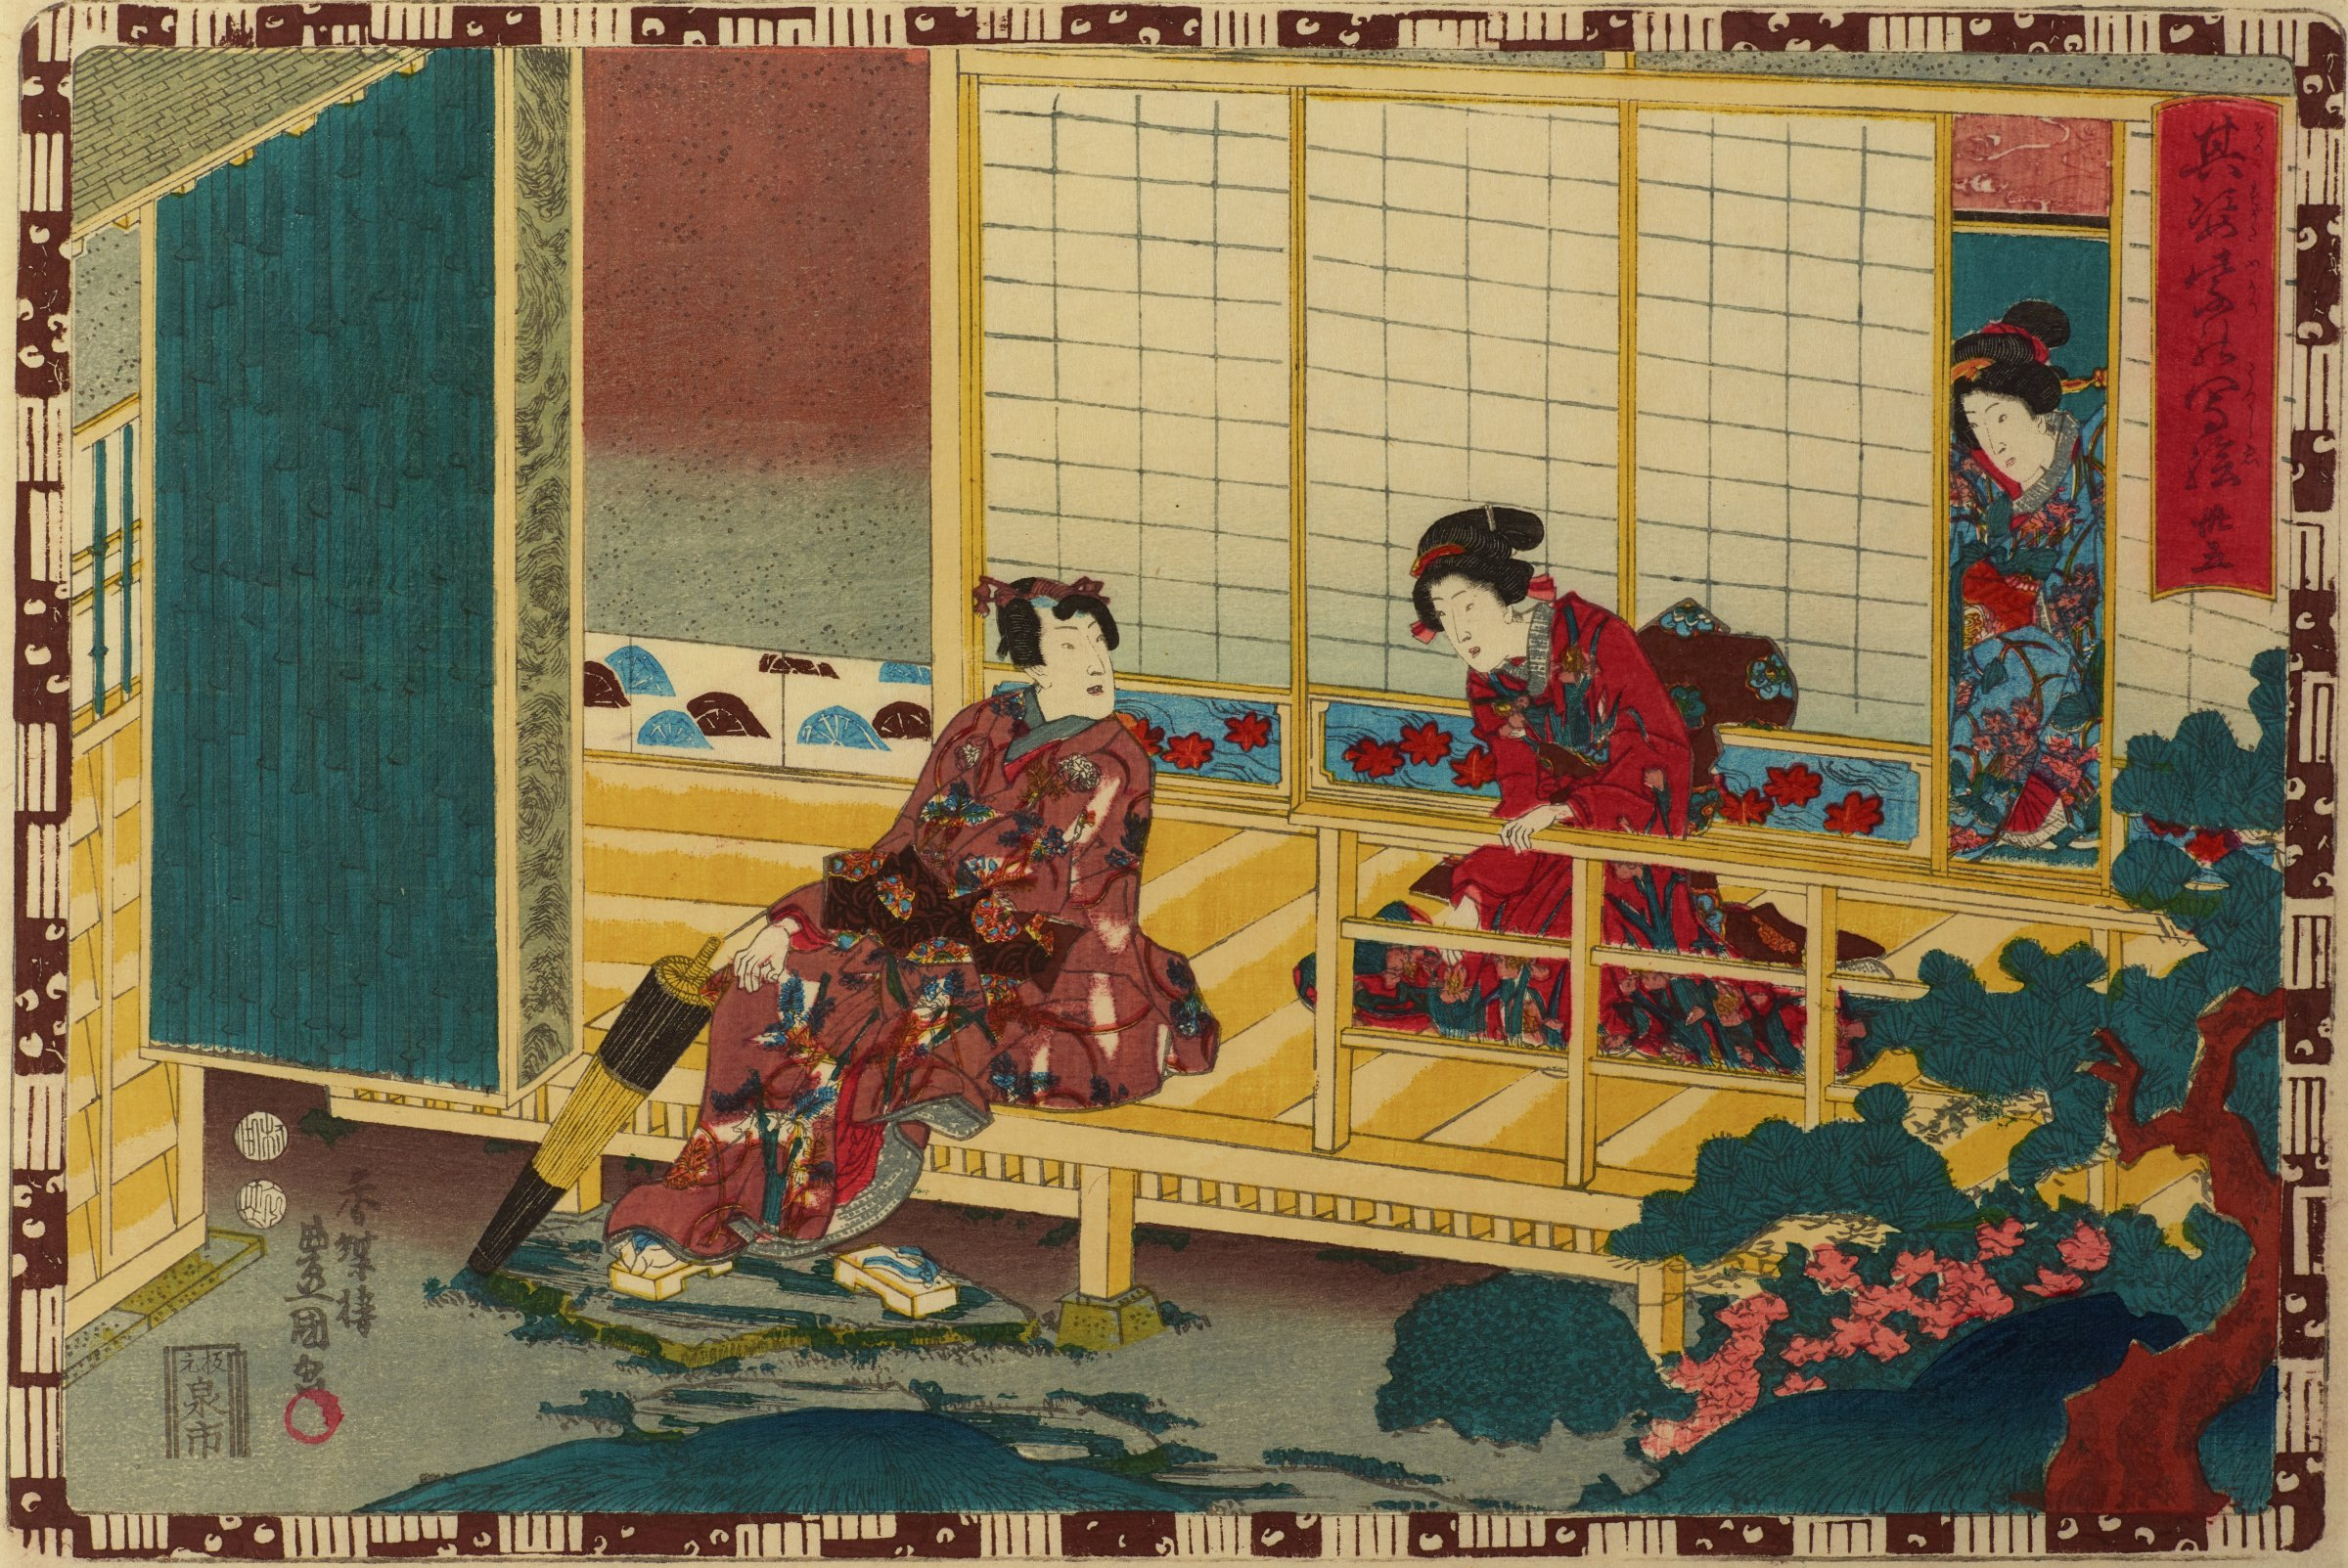 Chapter 35 (Spring Shoots II), from the series of Faithful Depiction of That Purple Figure, Utagawa Kunisada, ink and color on paper